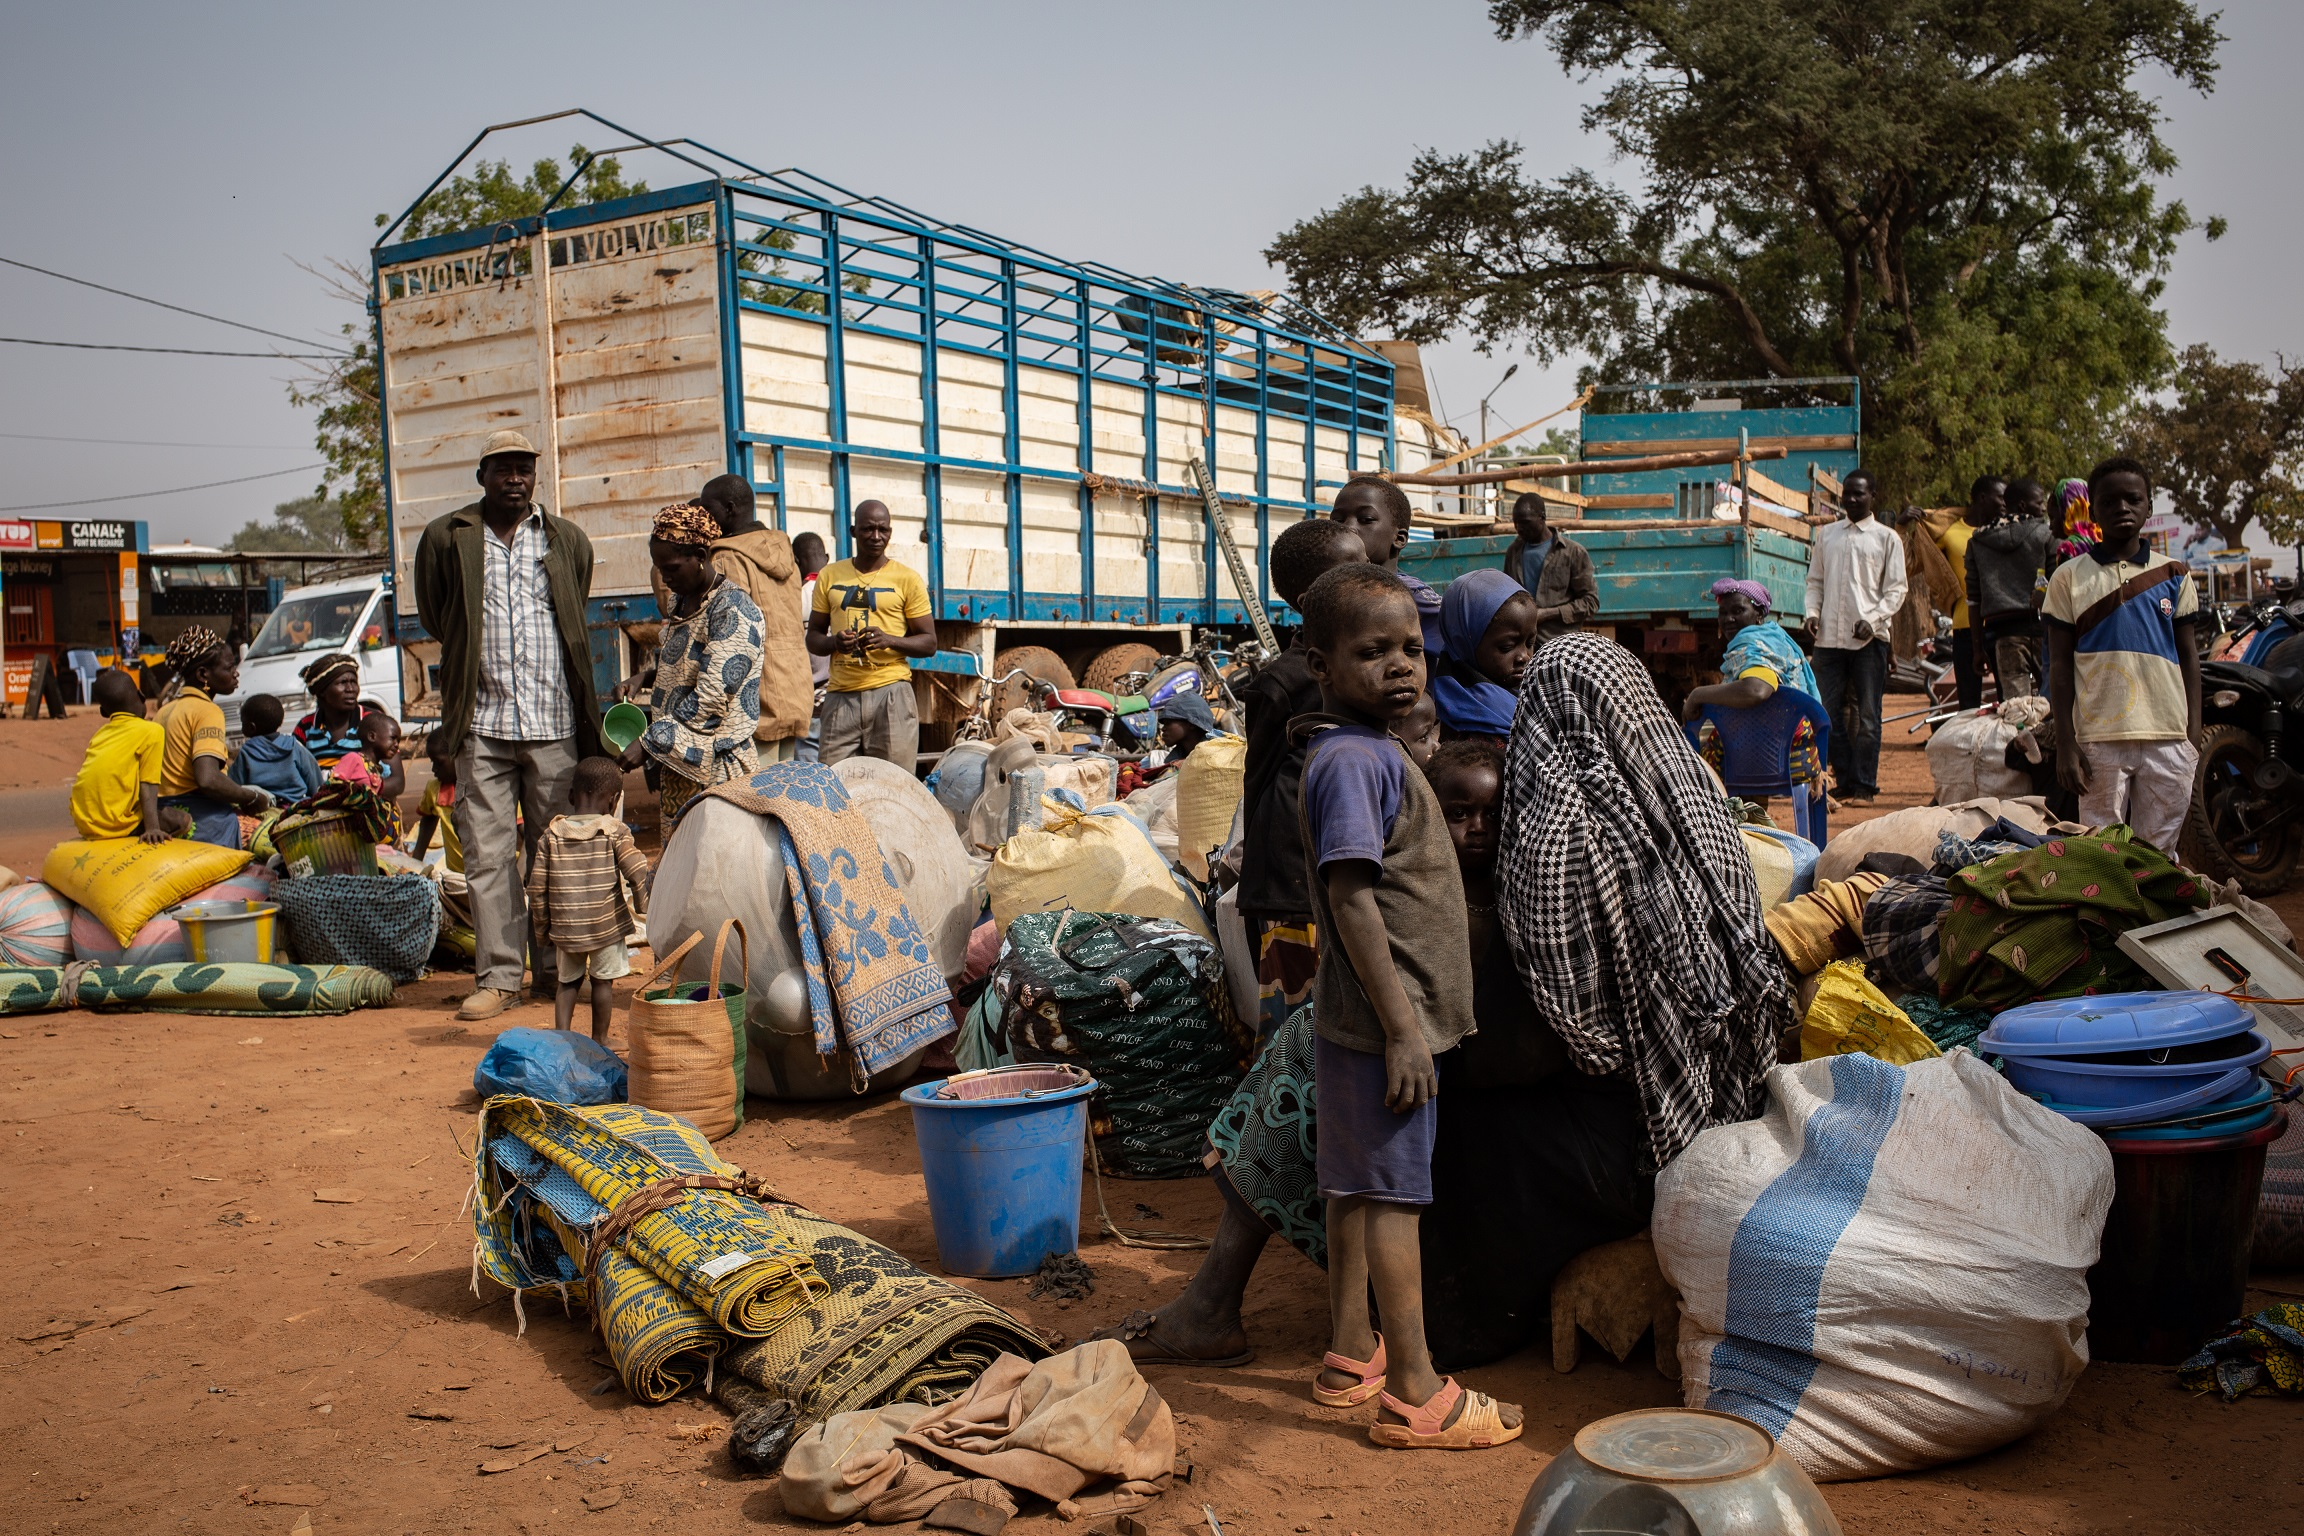 Newly displaced people waiting on the side of the road after they fled attacks in Barsalogho, Burkina Faso